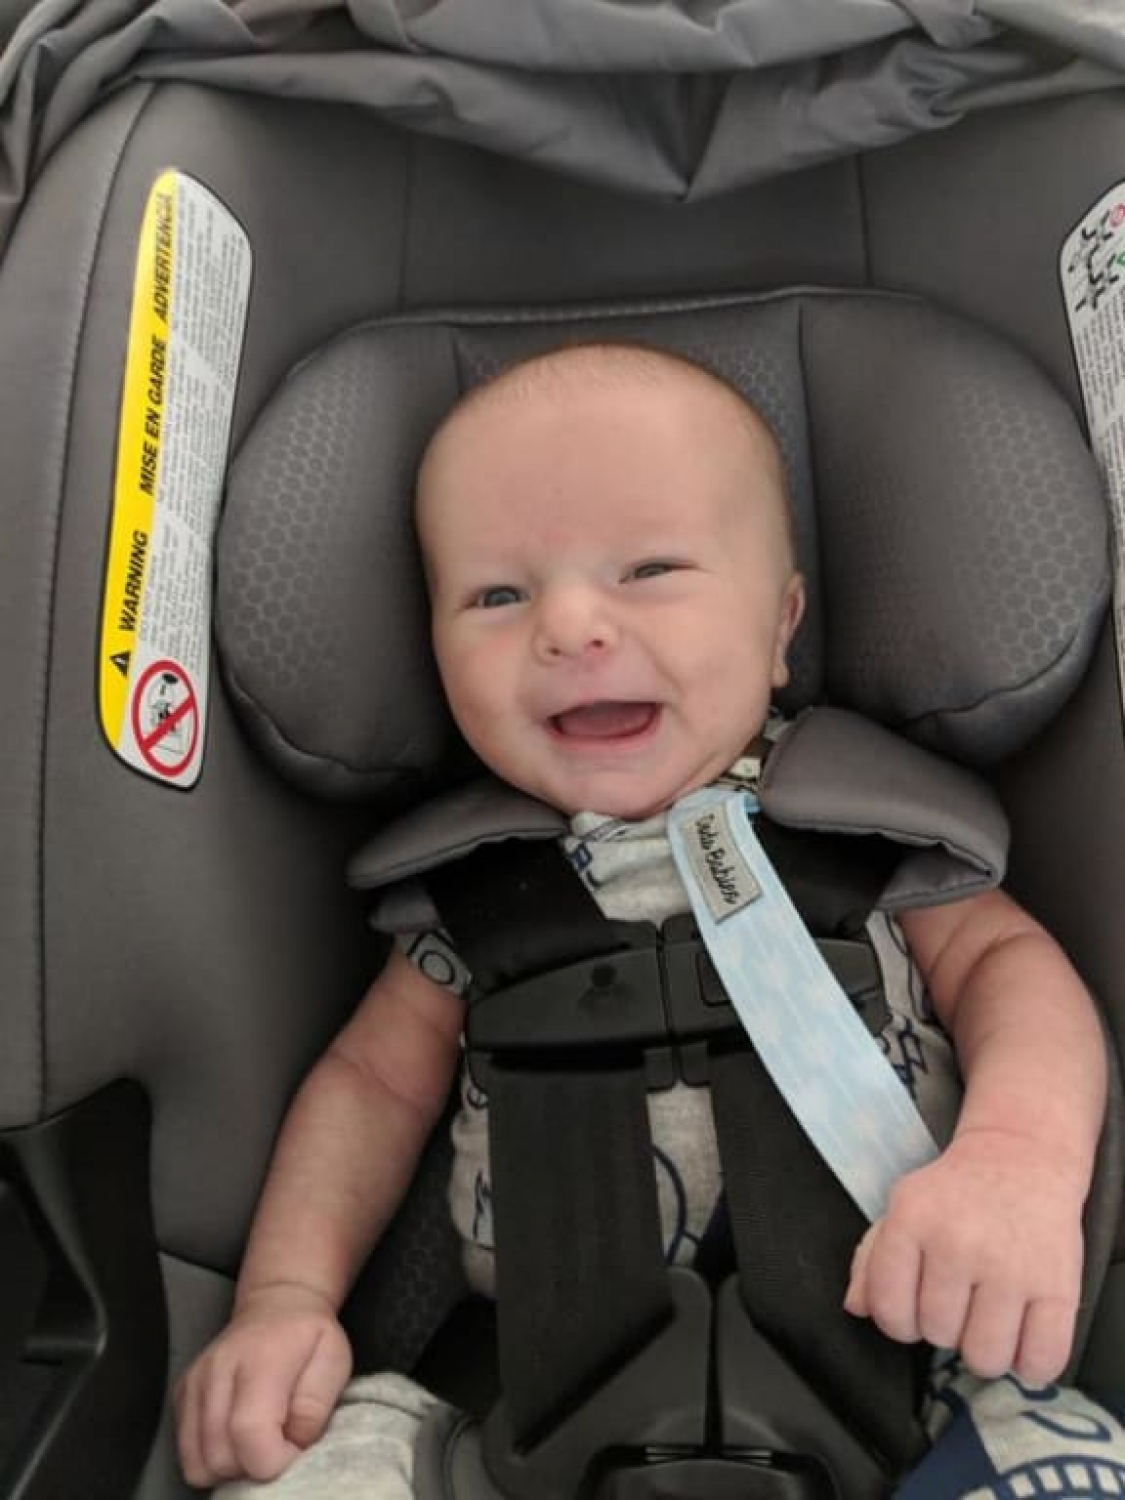 That I Cant Connect This Car Seat In My B Agile Double Stroller It Would Be Great If All The Britax Products Were Compatible